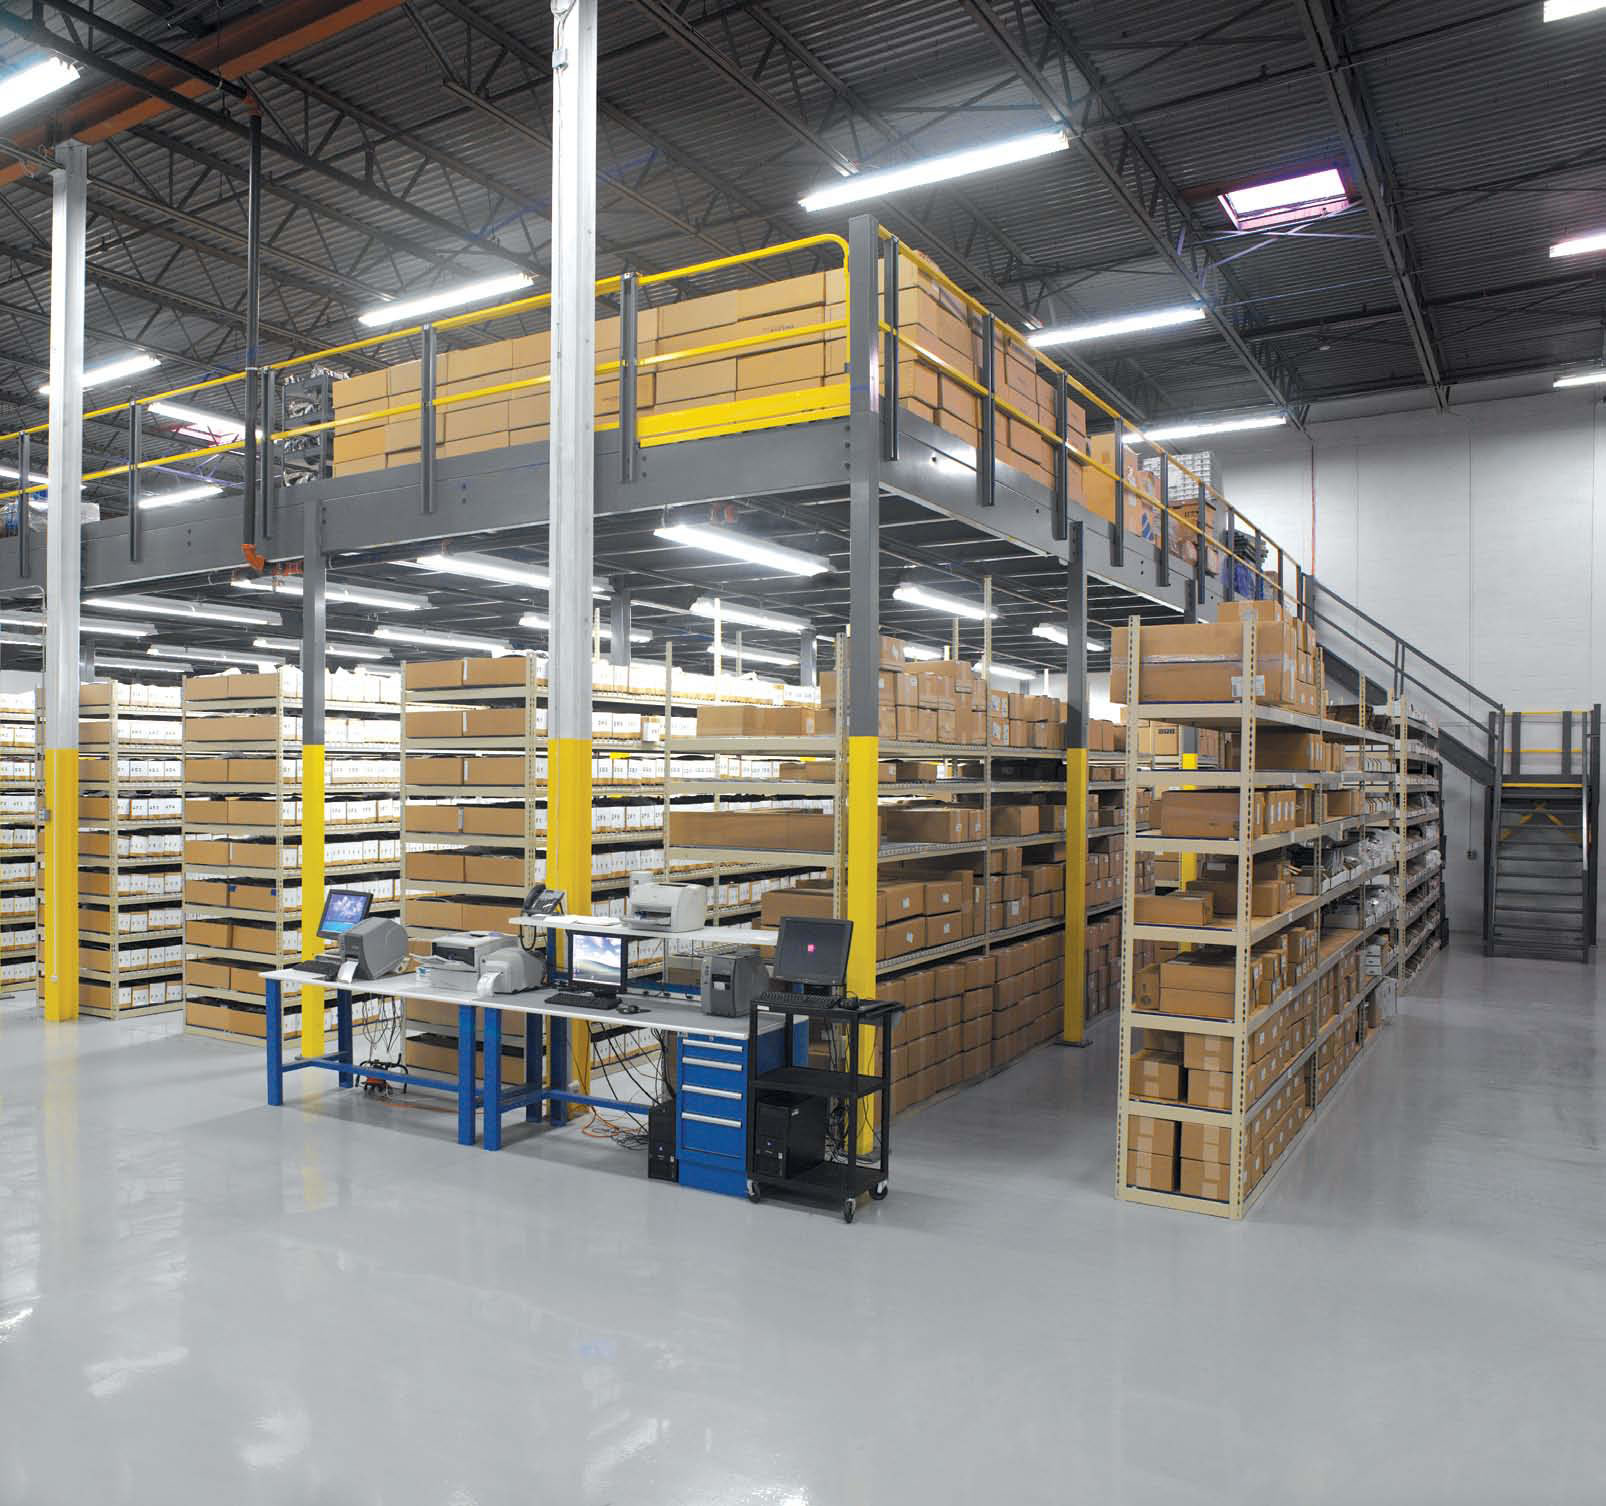 Mezzanines: Save Money AND Get More Storage Space in Your Facility